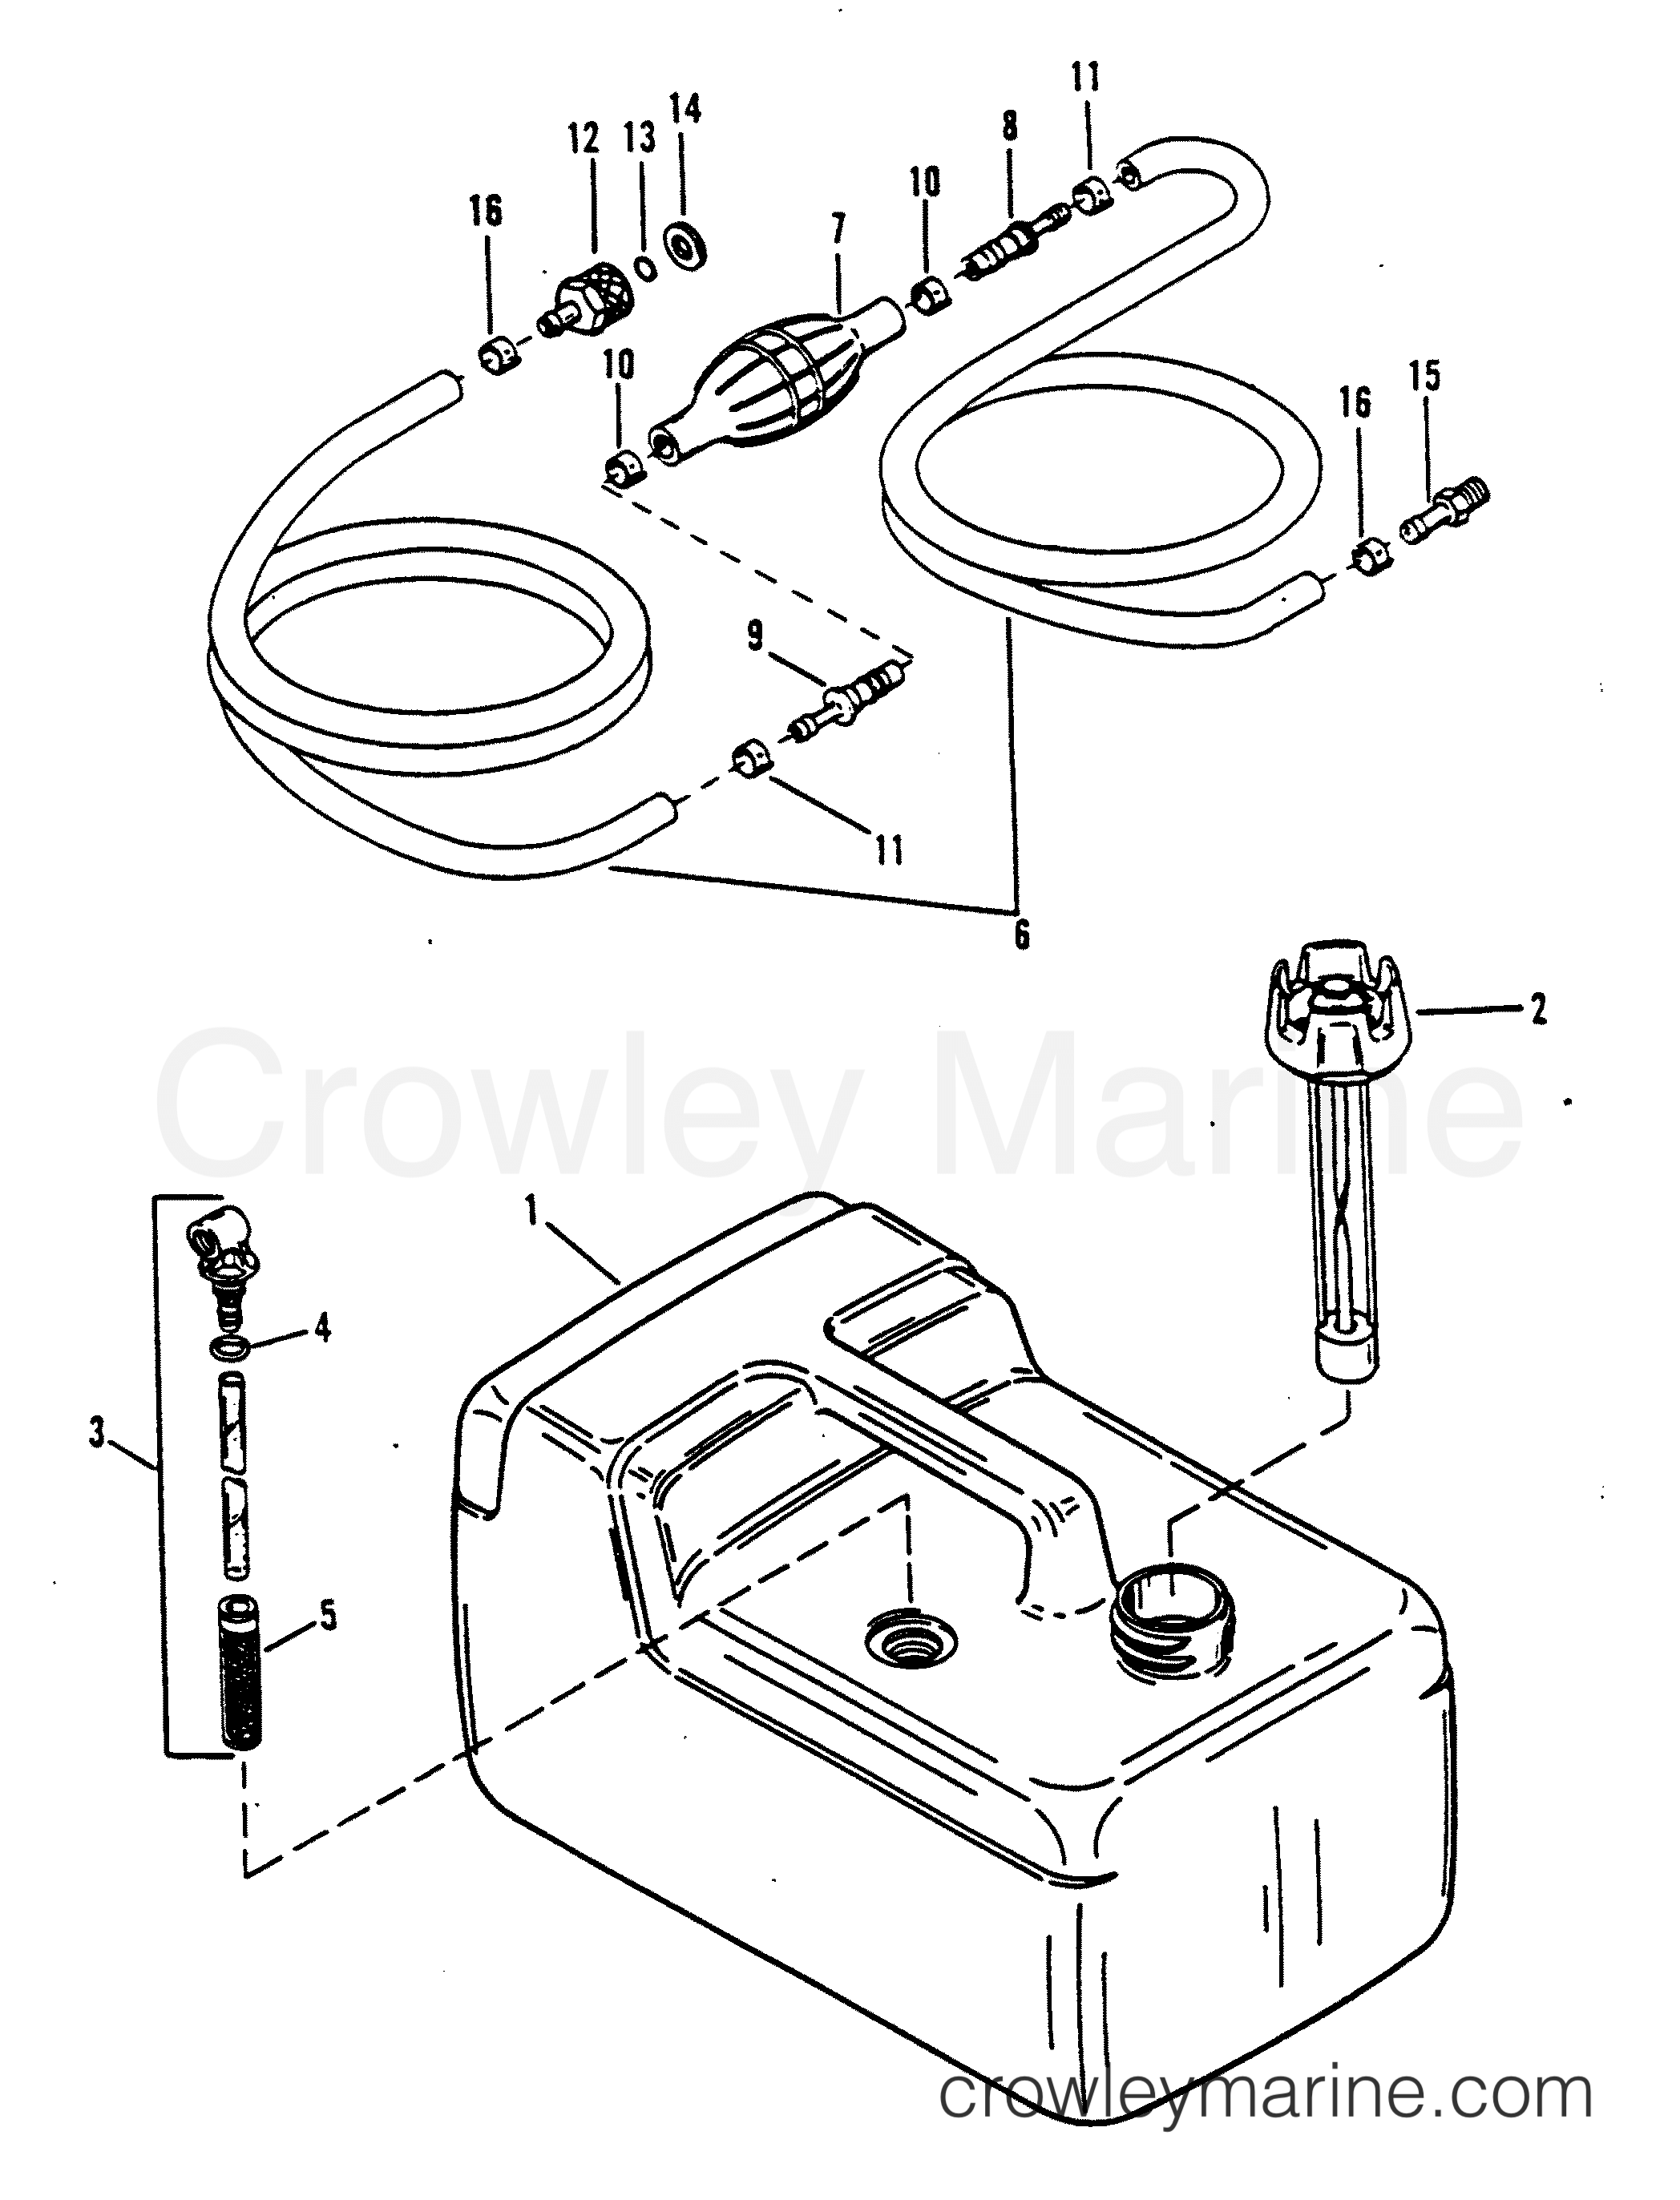 1988 Force Outboard 5 - H0052C88A [A] FUEL TANK AND LINE (PLASTIC - 3.2 GALLON) section